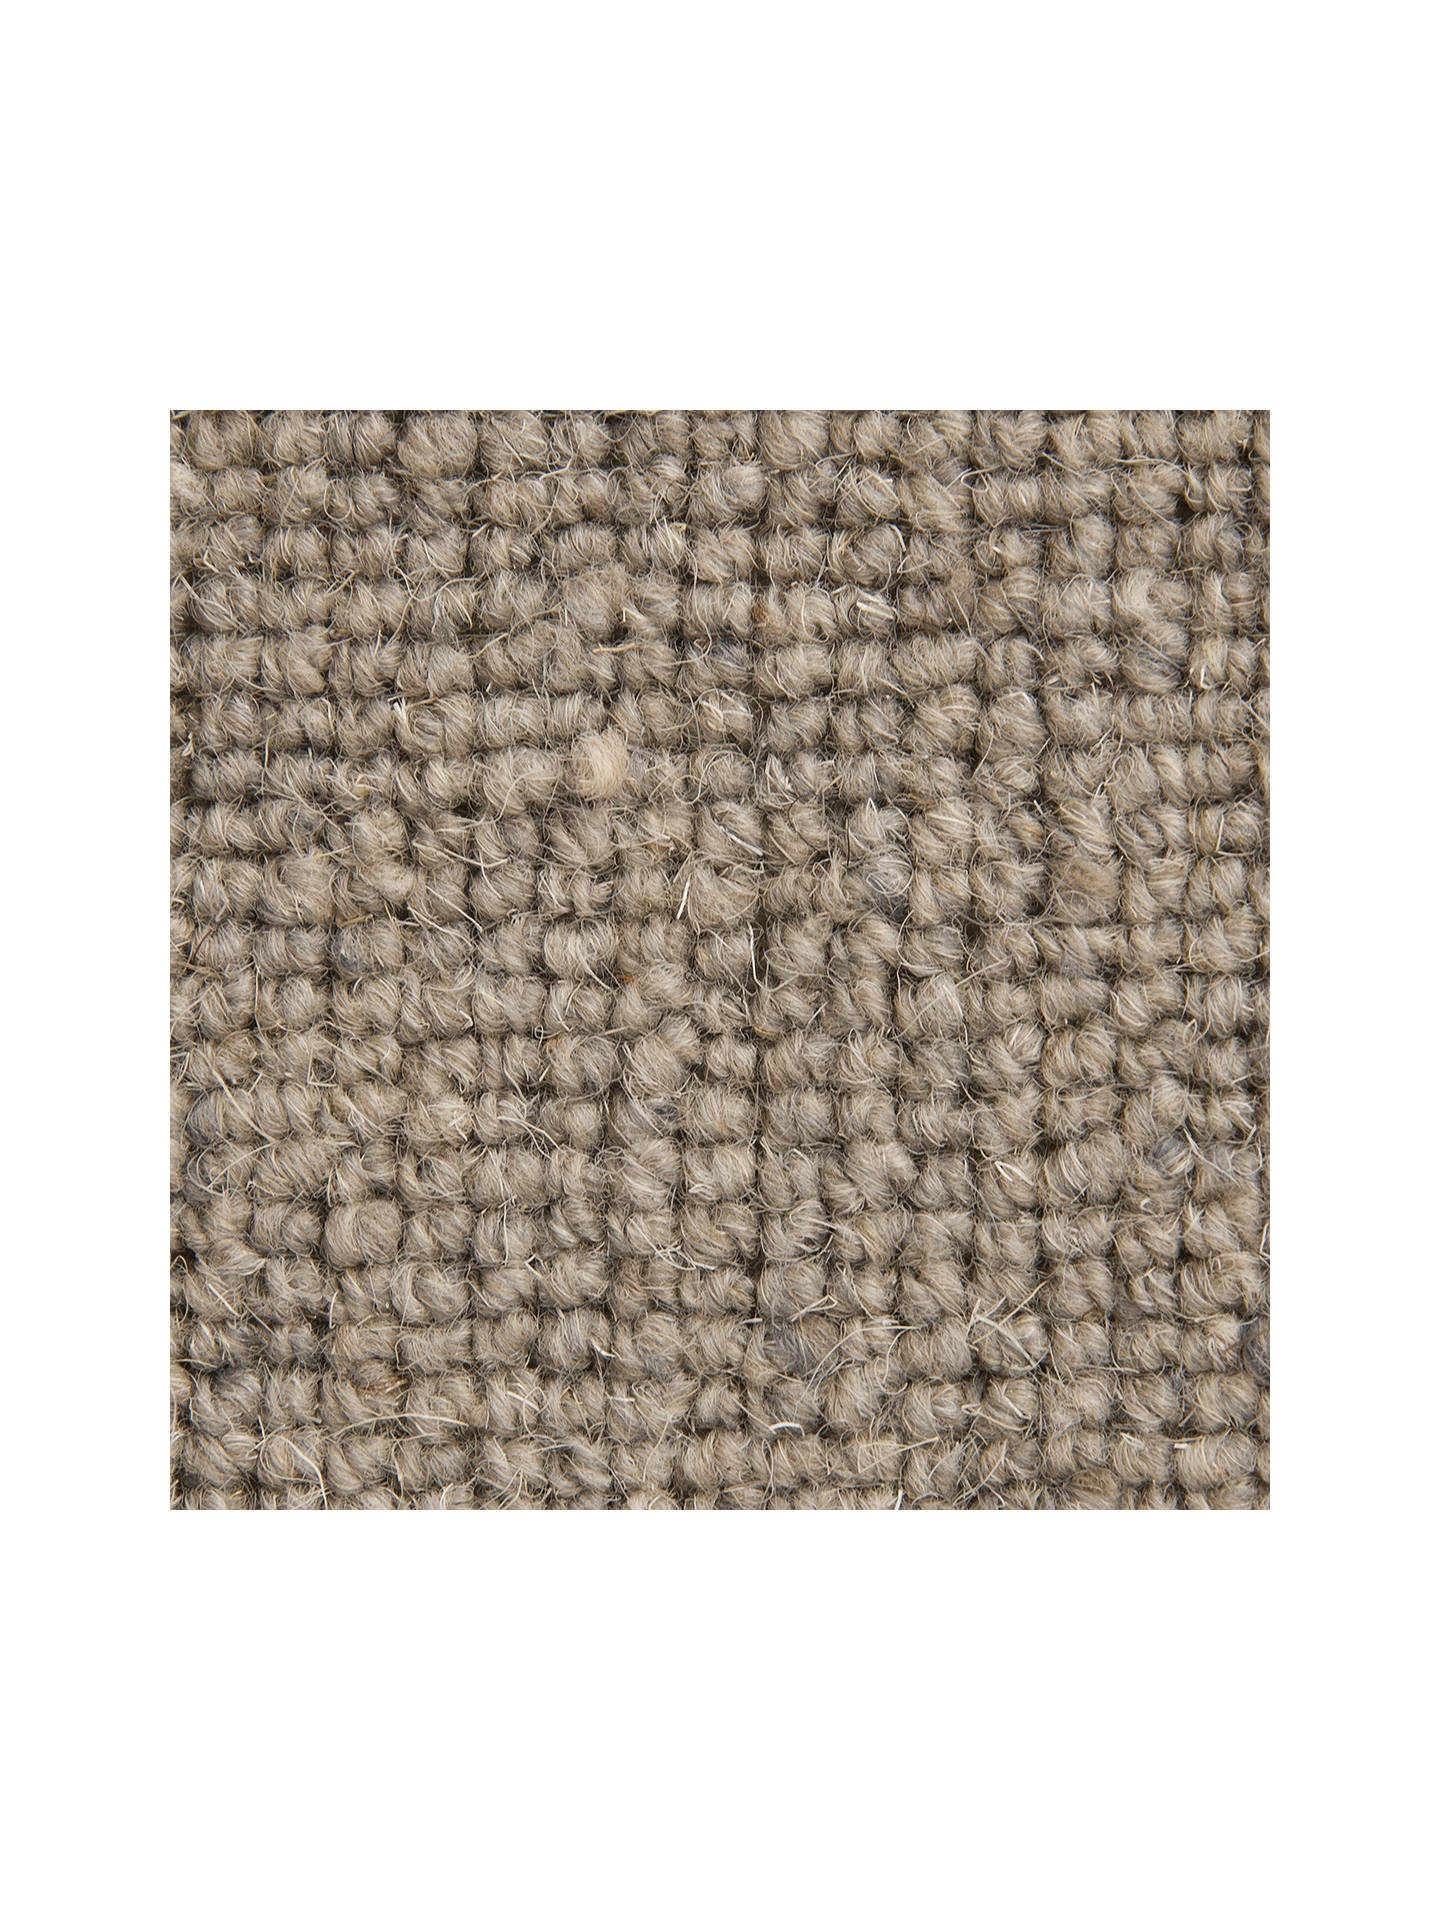 BuyJohn Lewis & Partners Kingston Weave 3 Ply Wool Carpet, Fjord Online at johnlewis.com